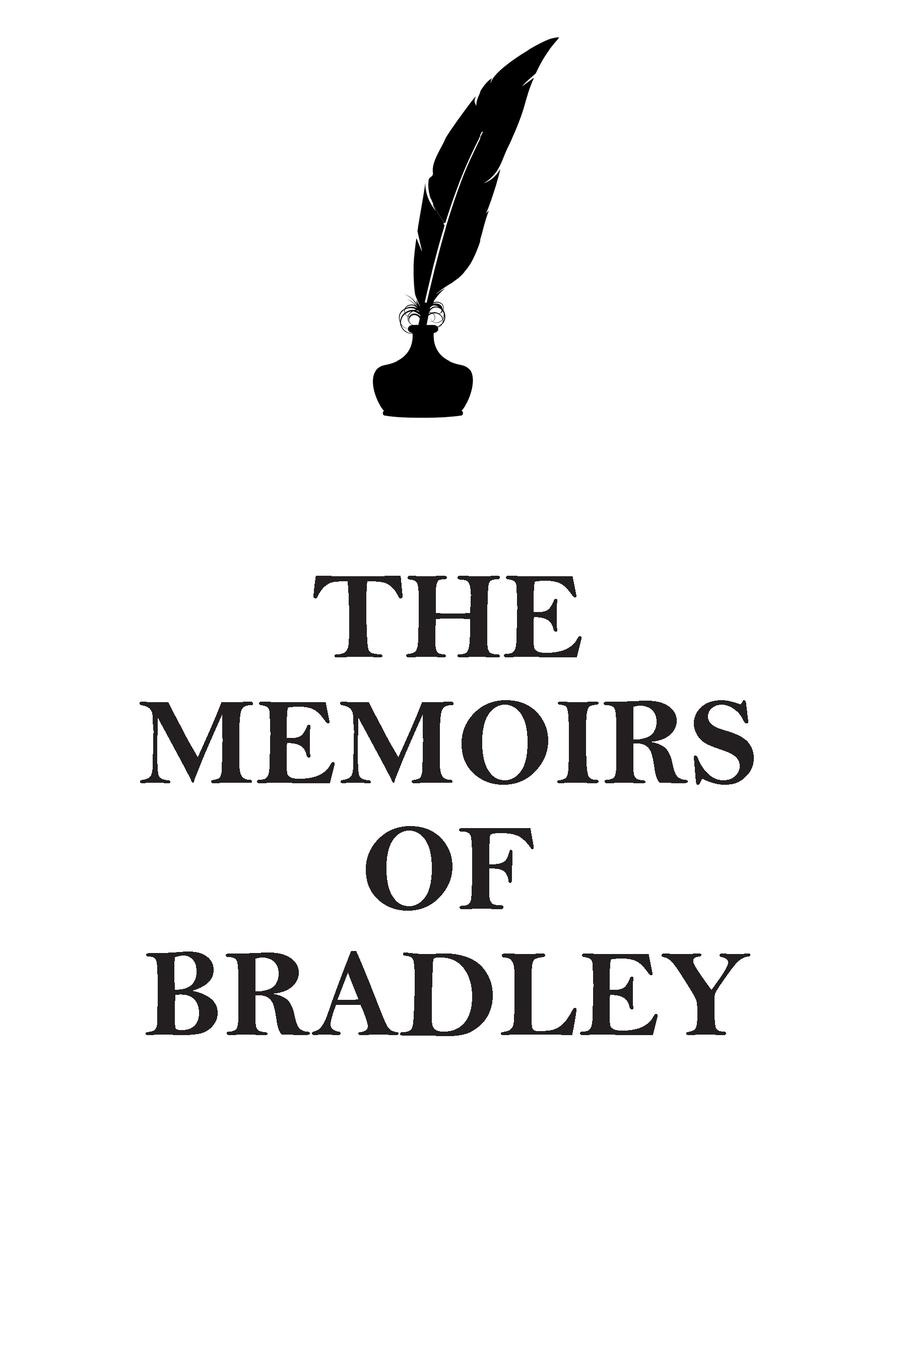 THE MEMOIRS OF BRADLEY AFFIRMATIONS WORKBOOK Positive Affirmations Workbook Includes. Mentoring Questions, Guidance, Supporting You